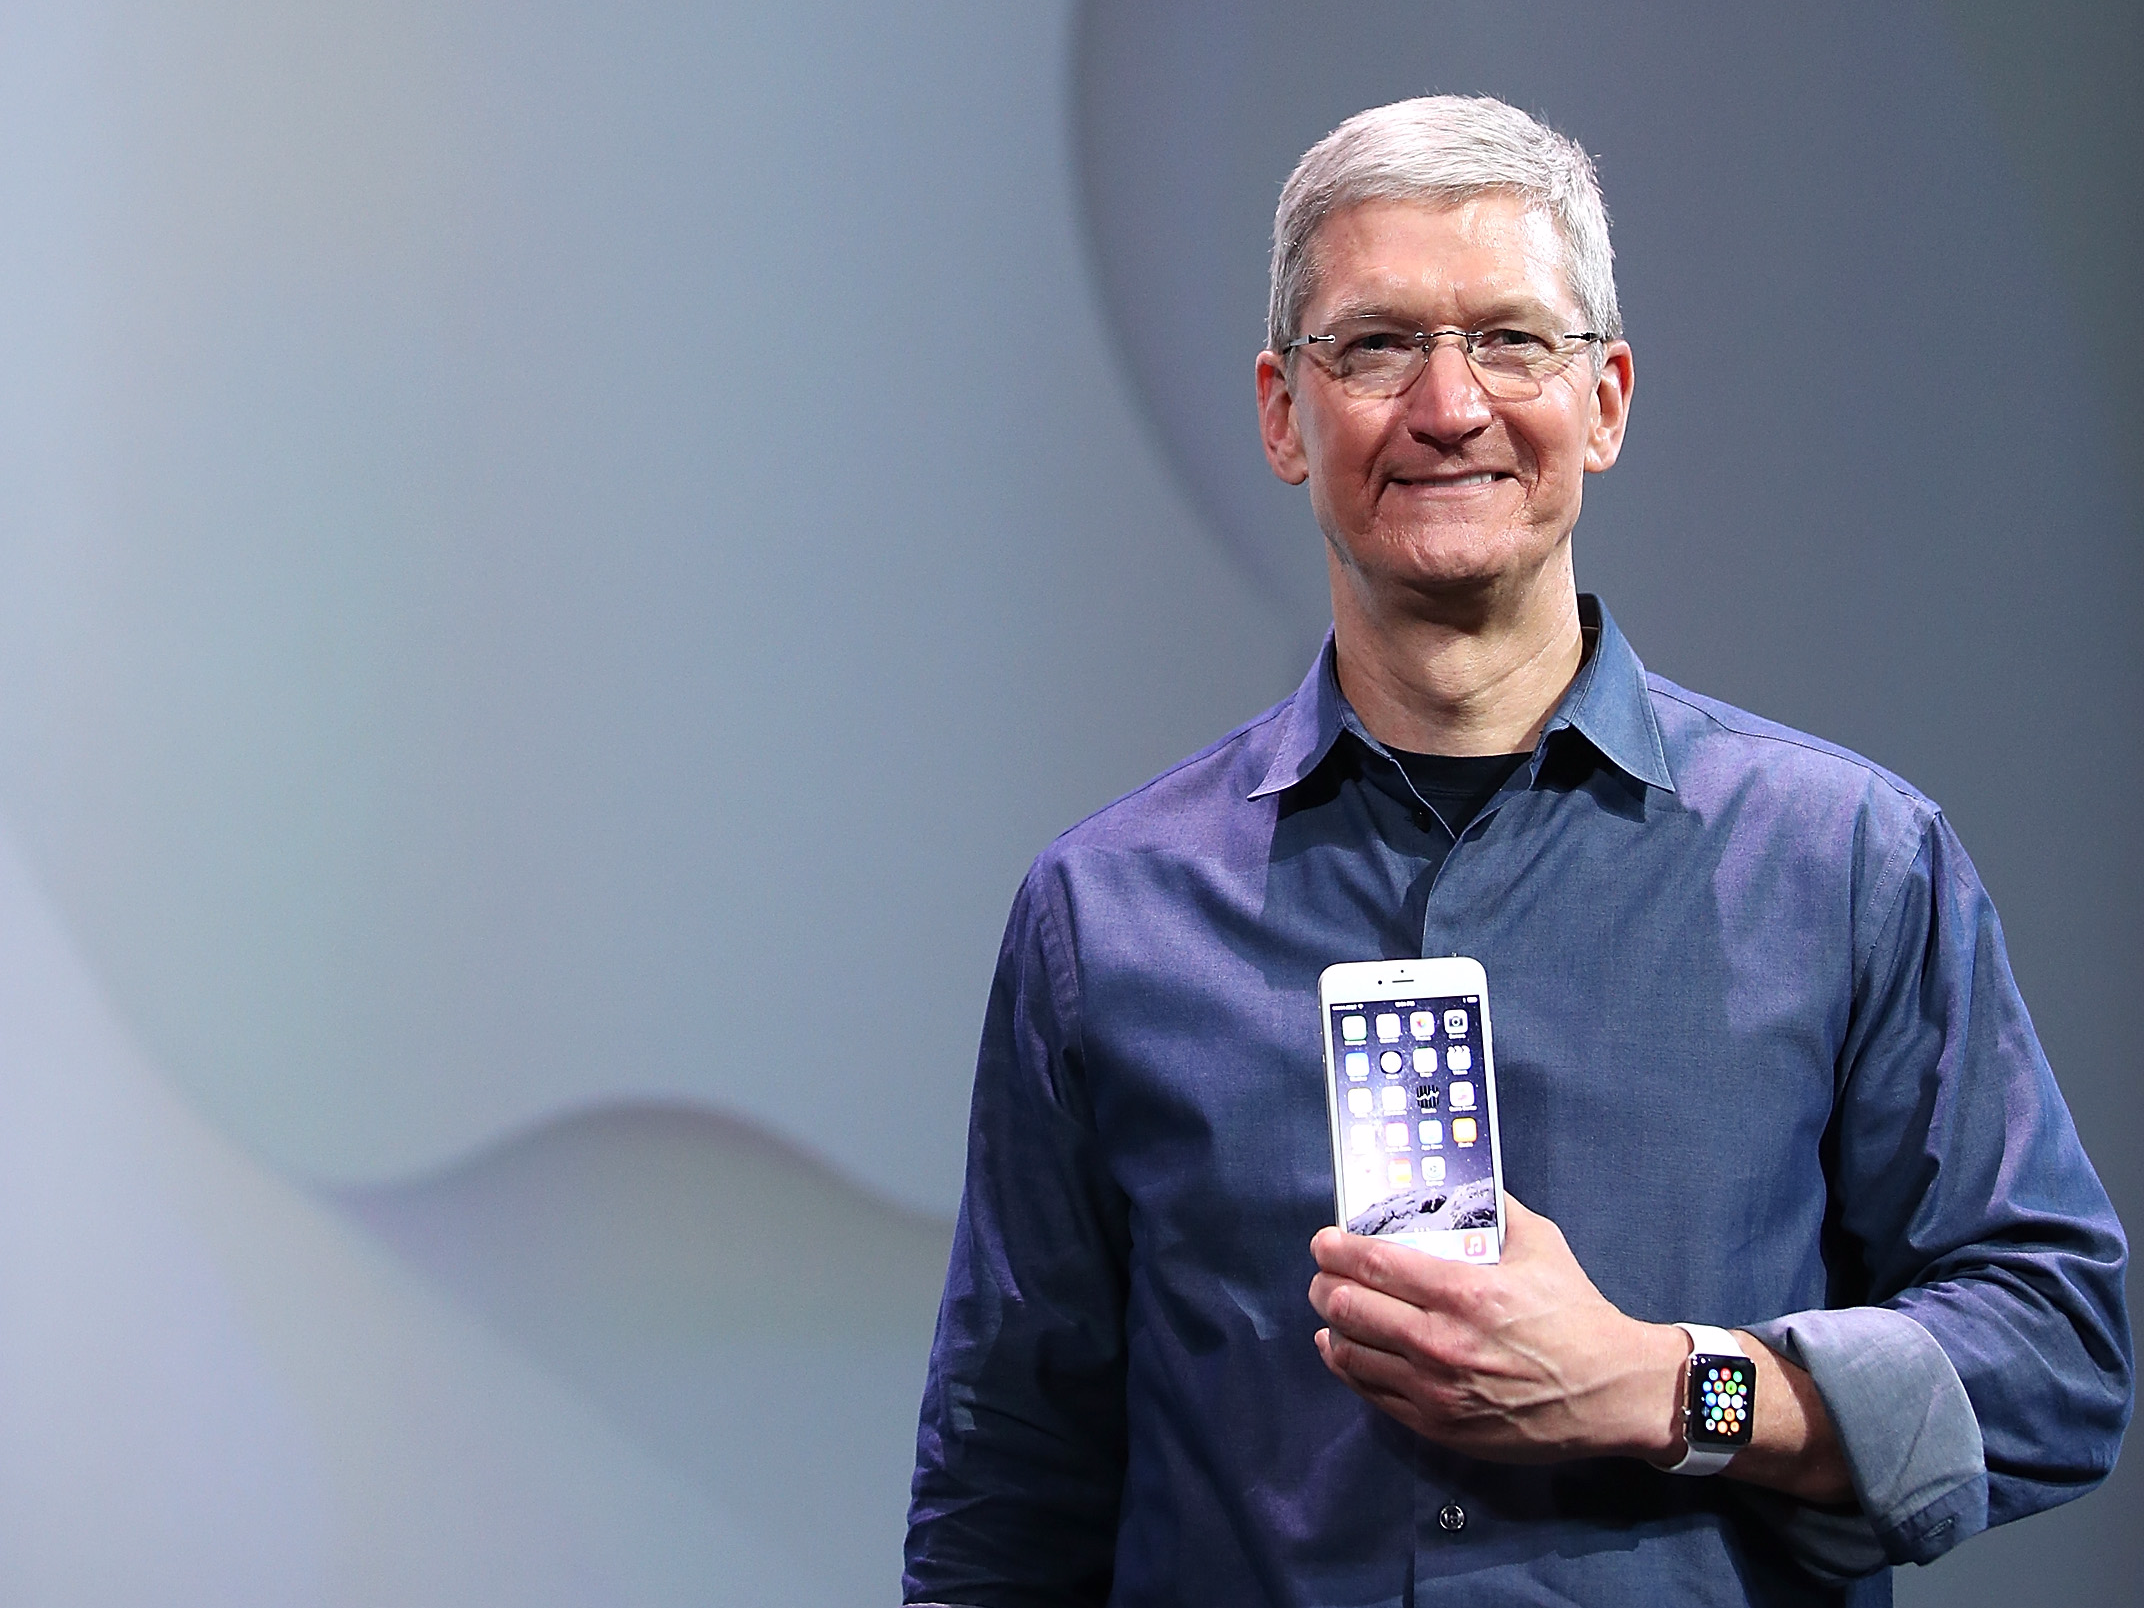 It turns out there was nothing substantial on the San Bernardino iPhone all along